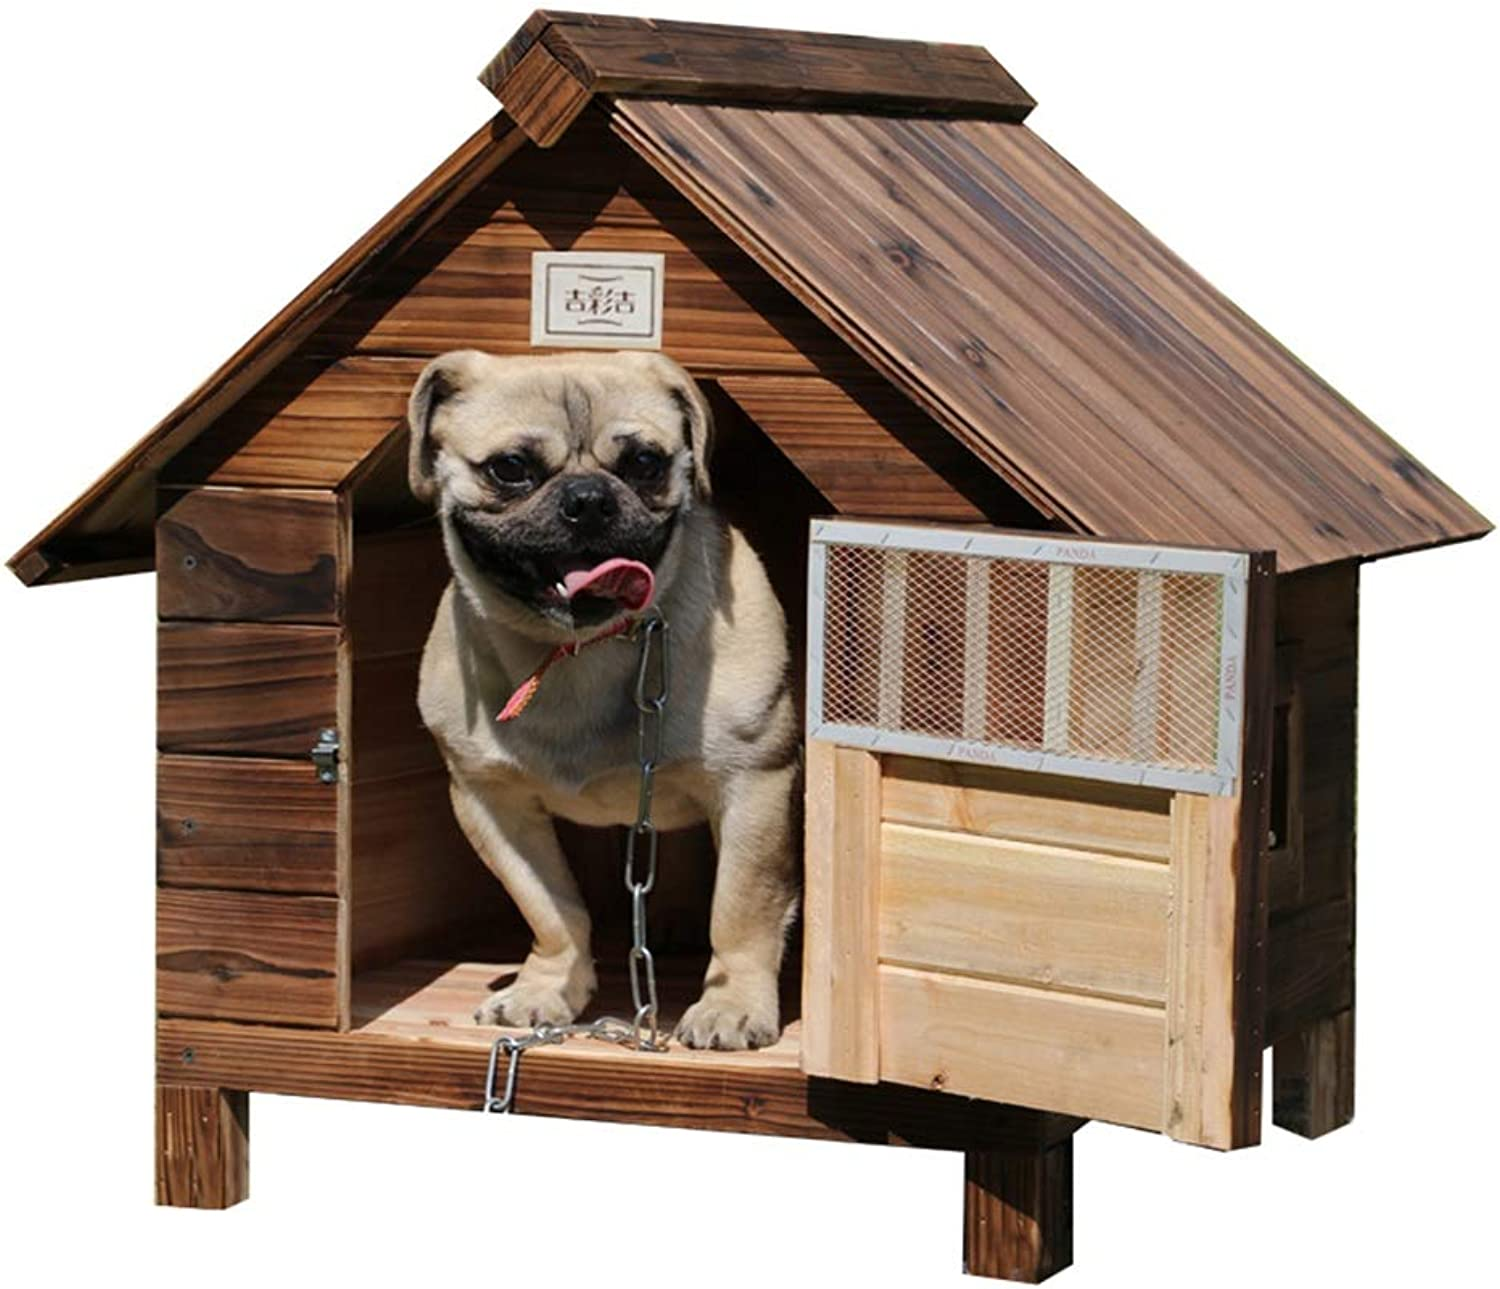 Cages & Pens Pet House Dog House Outdoor Rainproof Solid Wood Dog House Pet Nest Indoor Kennel Kennel Cat Cat House Pet House (color   Brown, Size   56  45  48cm)